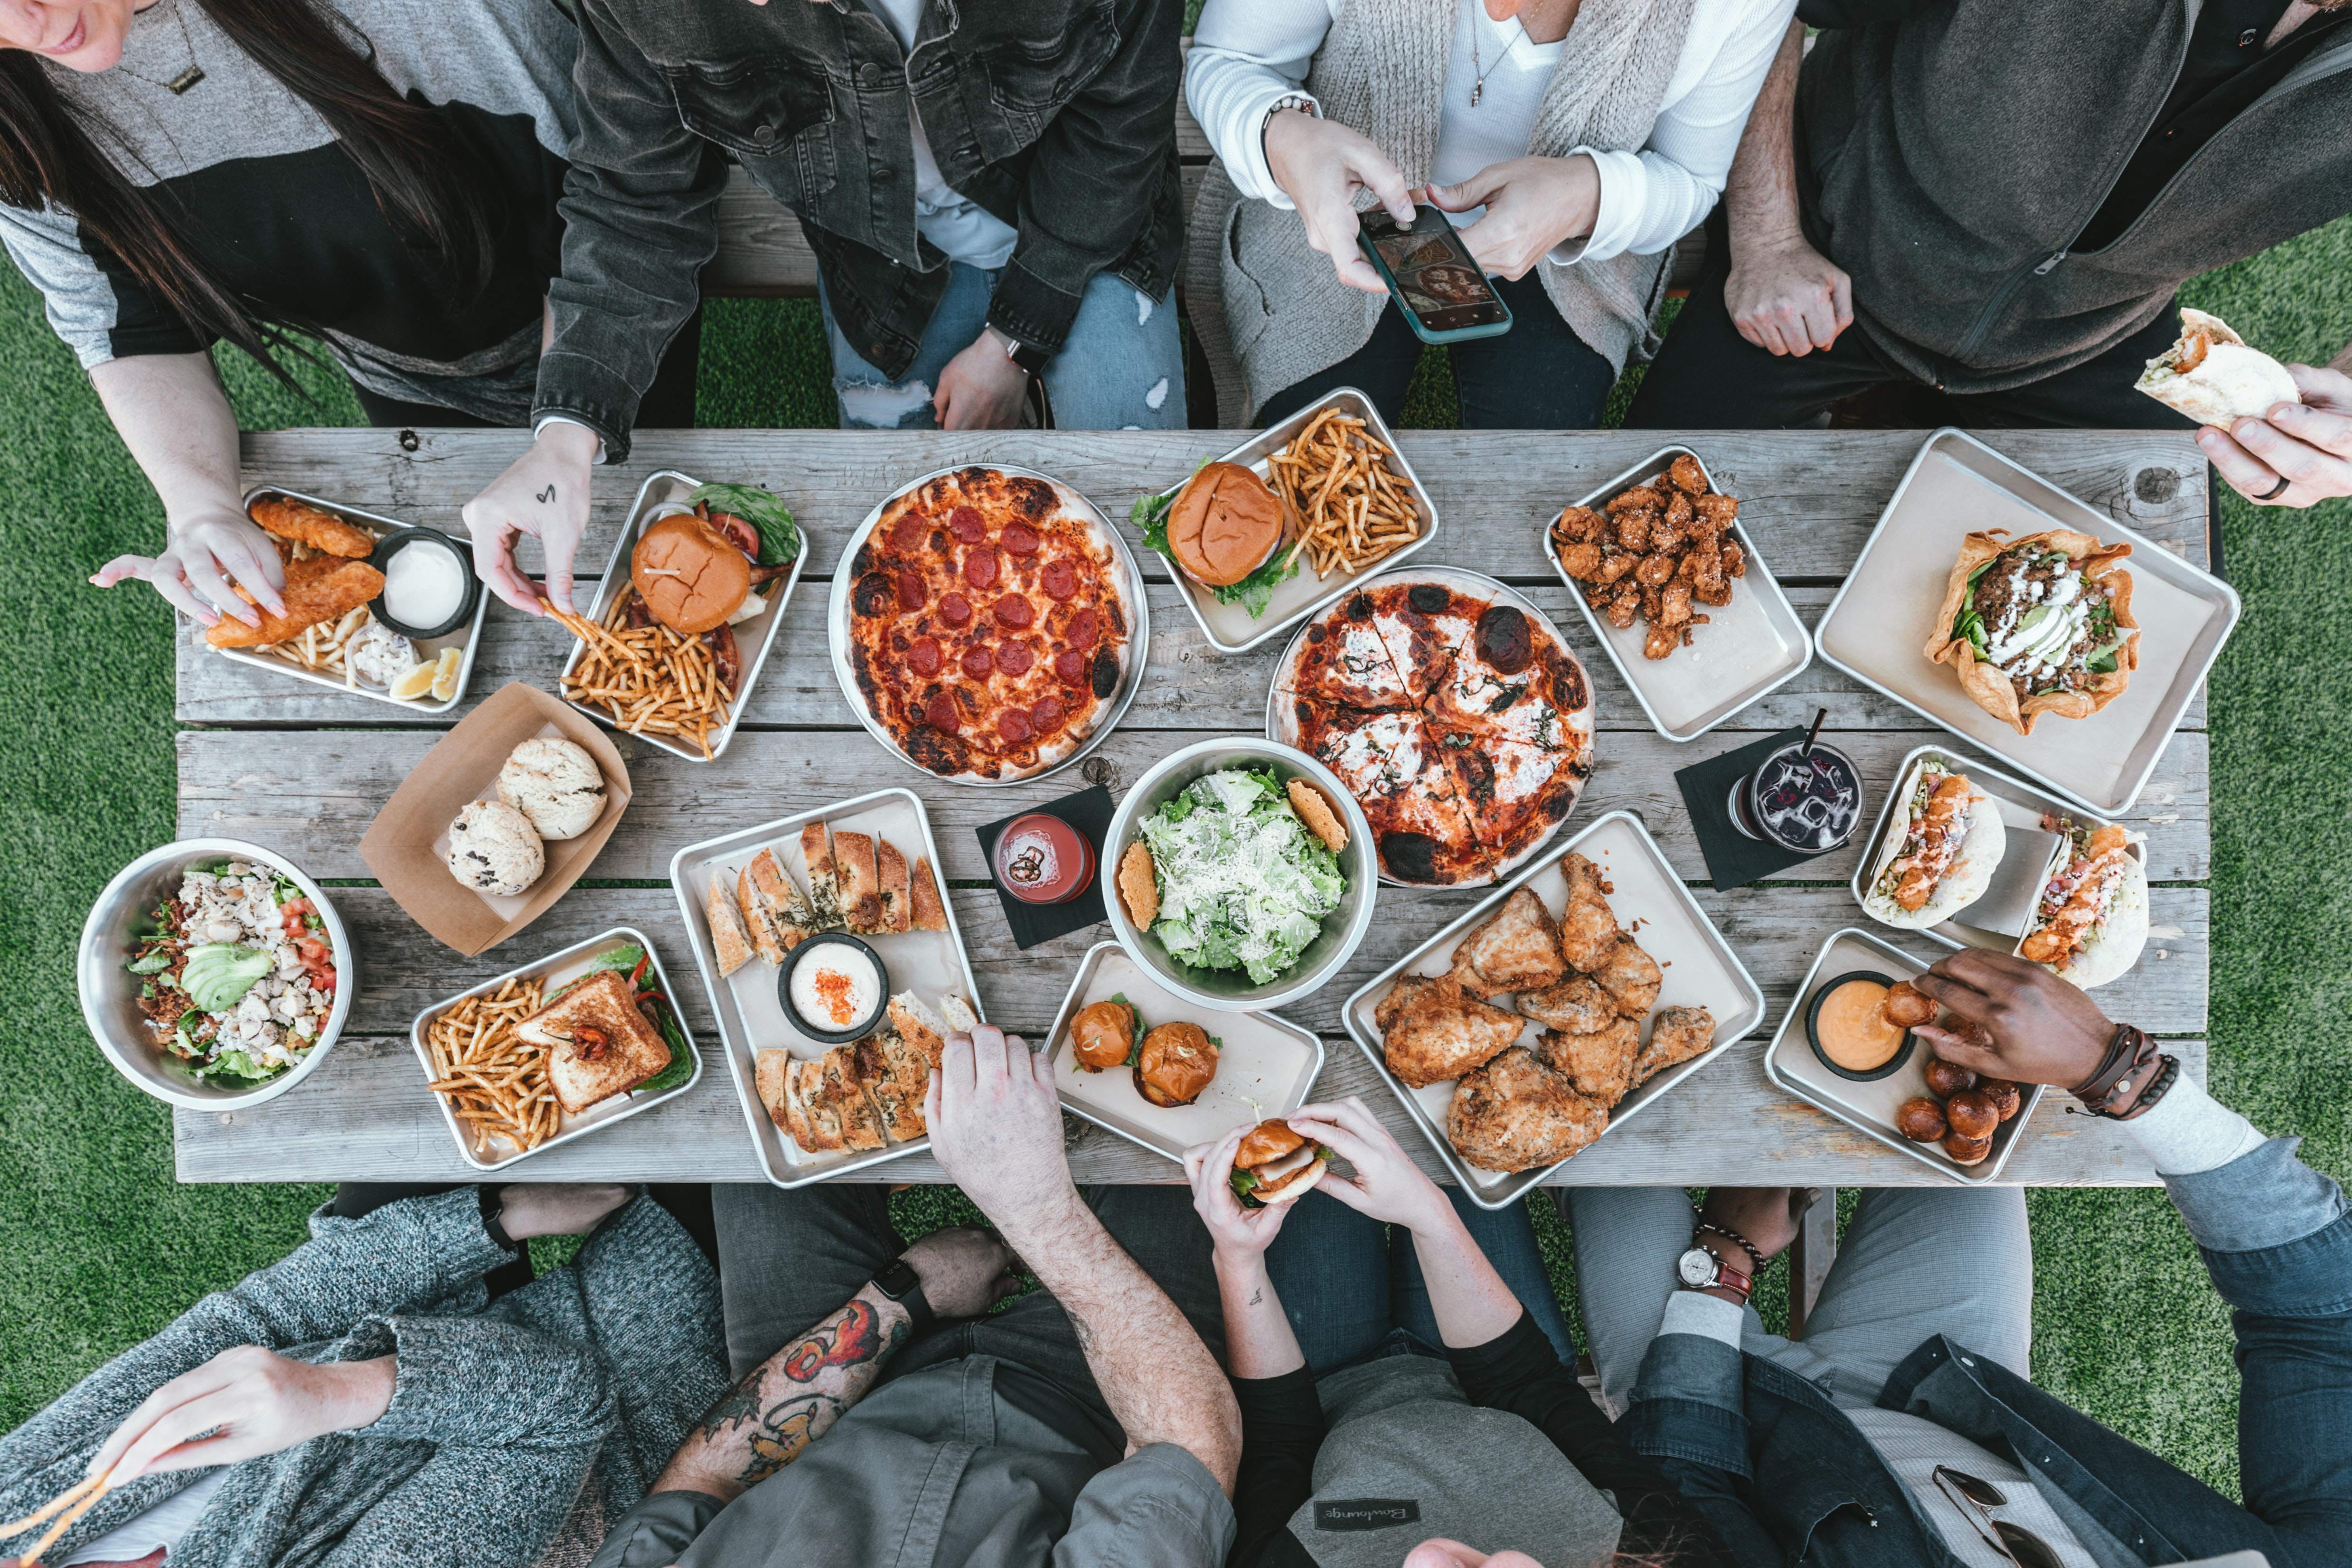 026: Last Supper Syndrome & how to avoid it